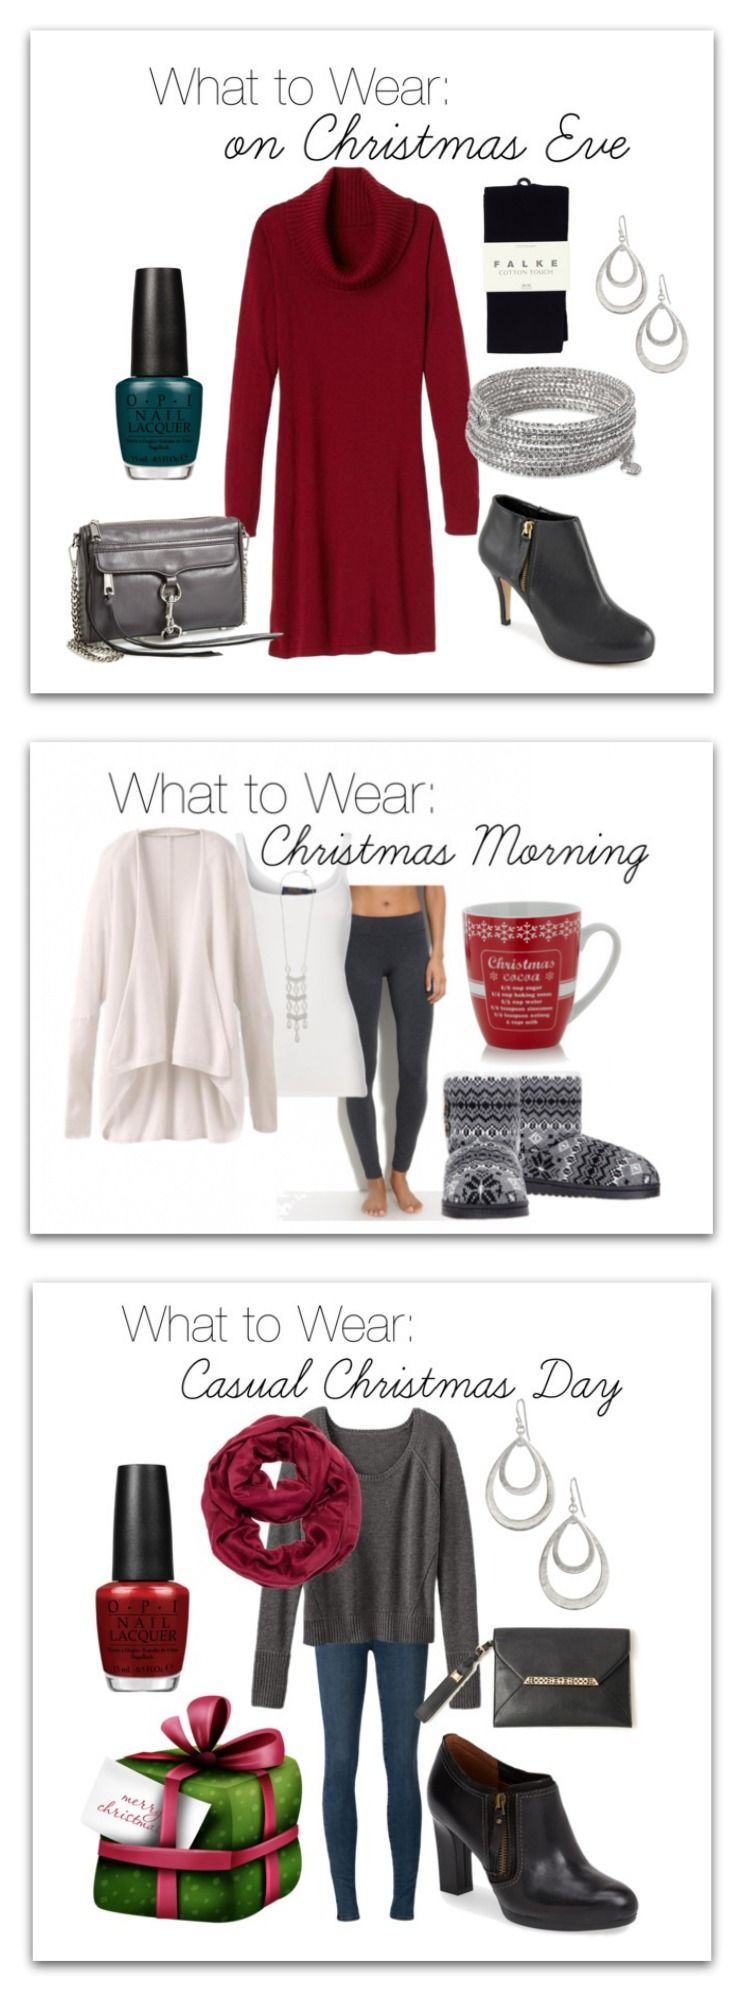 12 days of holiday outfits wearable christmas outfit ideas for christmas eve christmas morning christmas day with shopping links